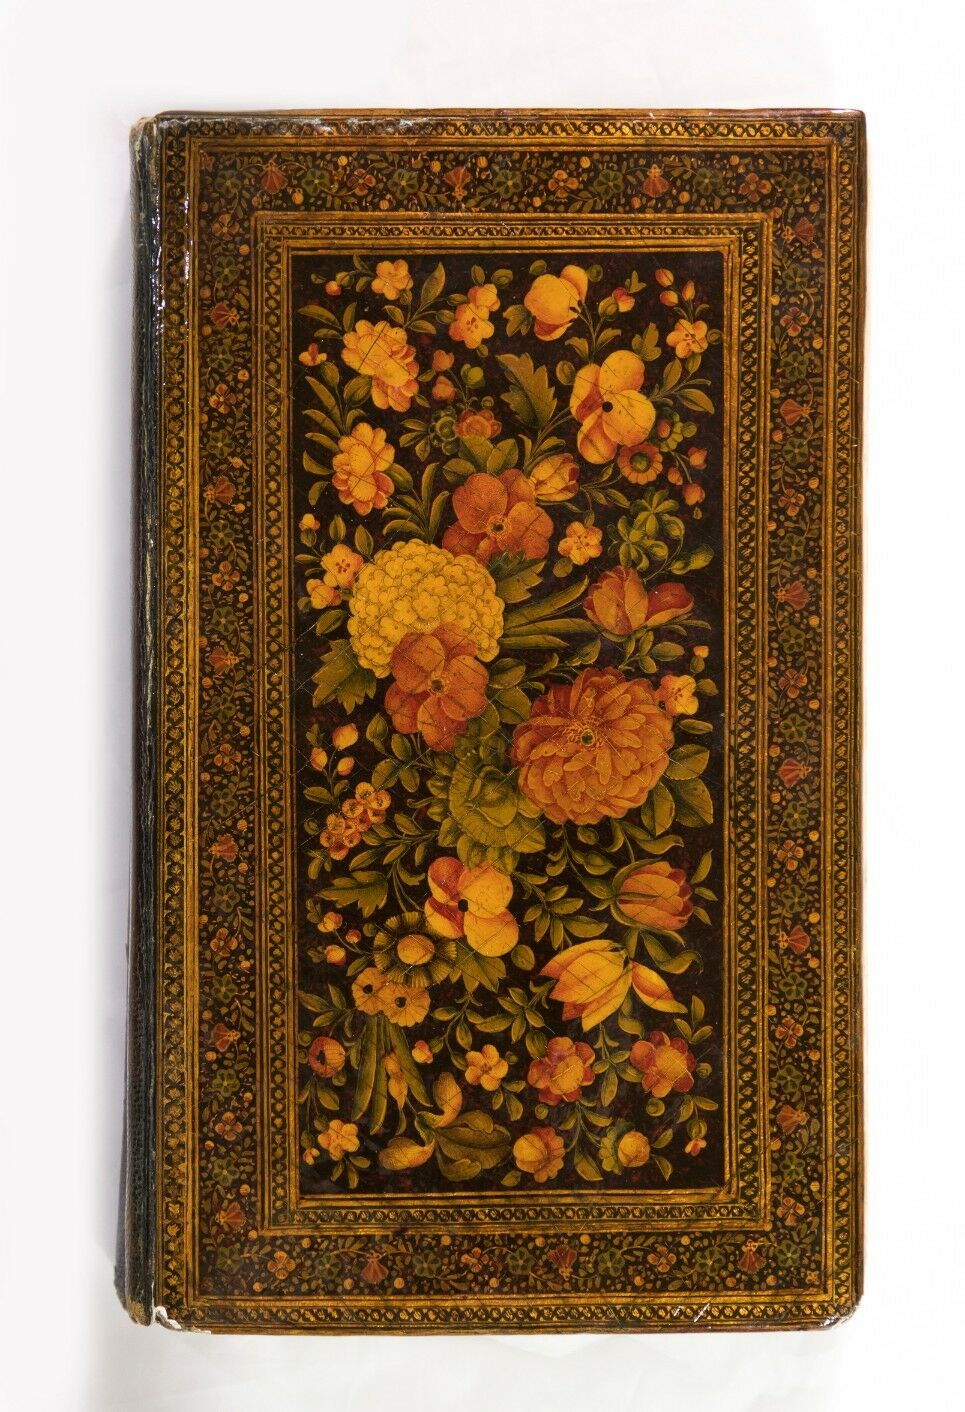 Antique Islamic Persian Manuscript Qajar Koran / Quran with Paper Mache Lacquer